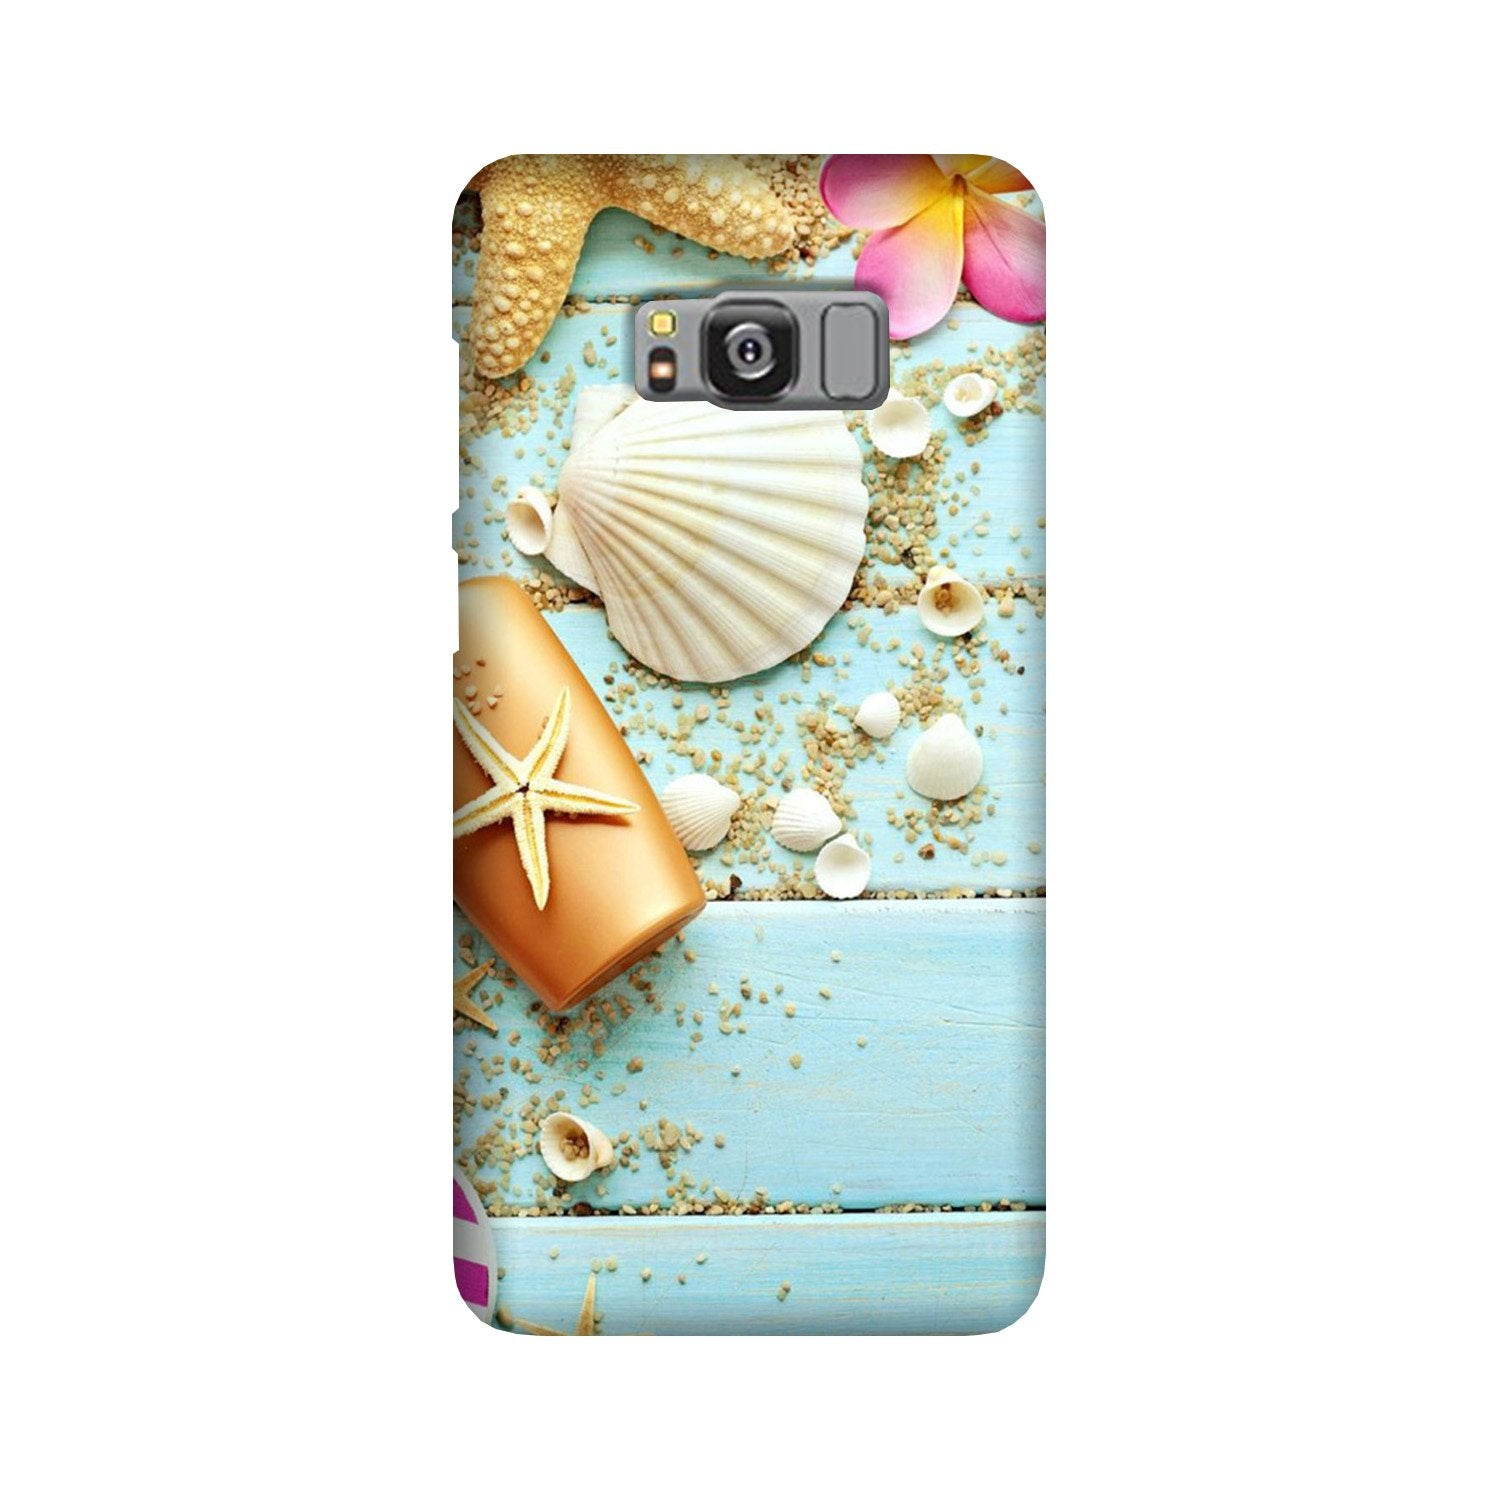 Sea Shells Case for Galaxy S8